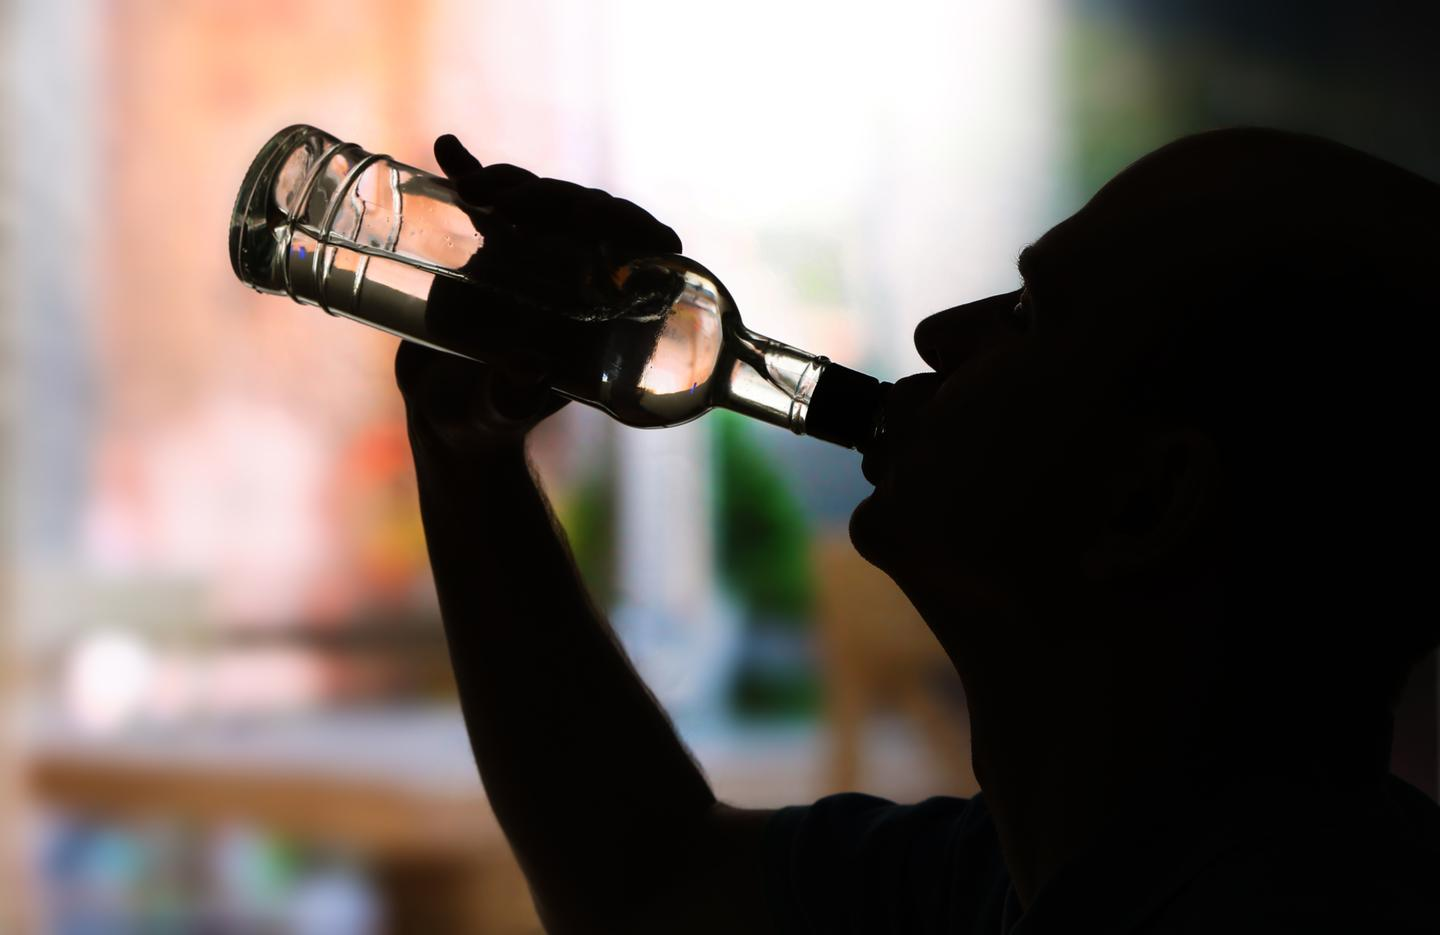 A new drug combo could lead to better treatments for alcohol and other addictions